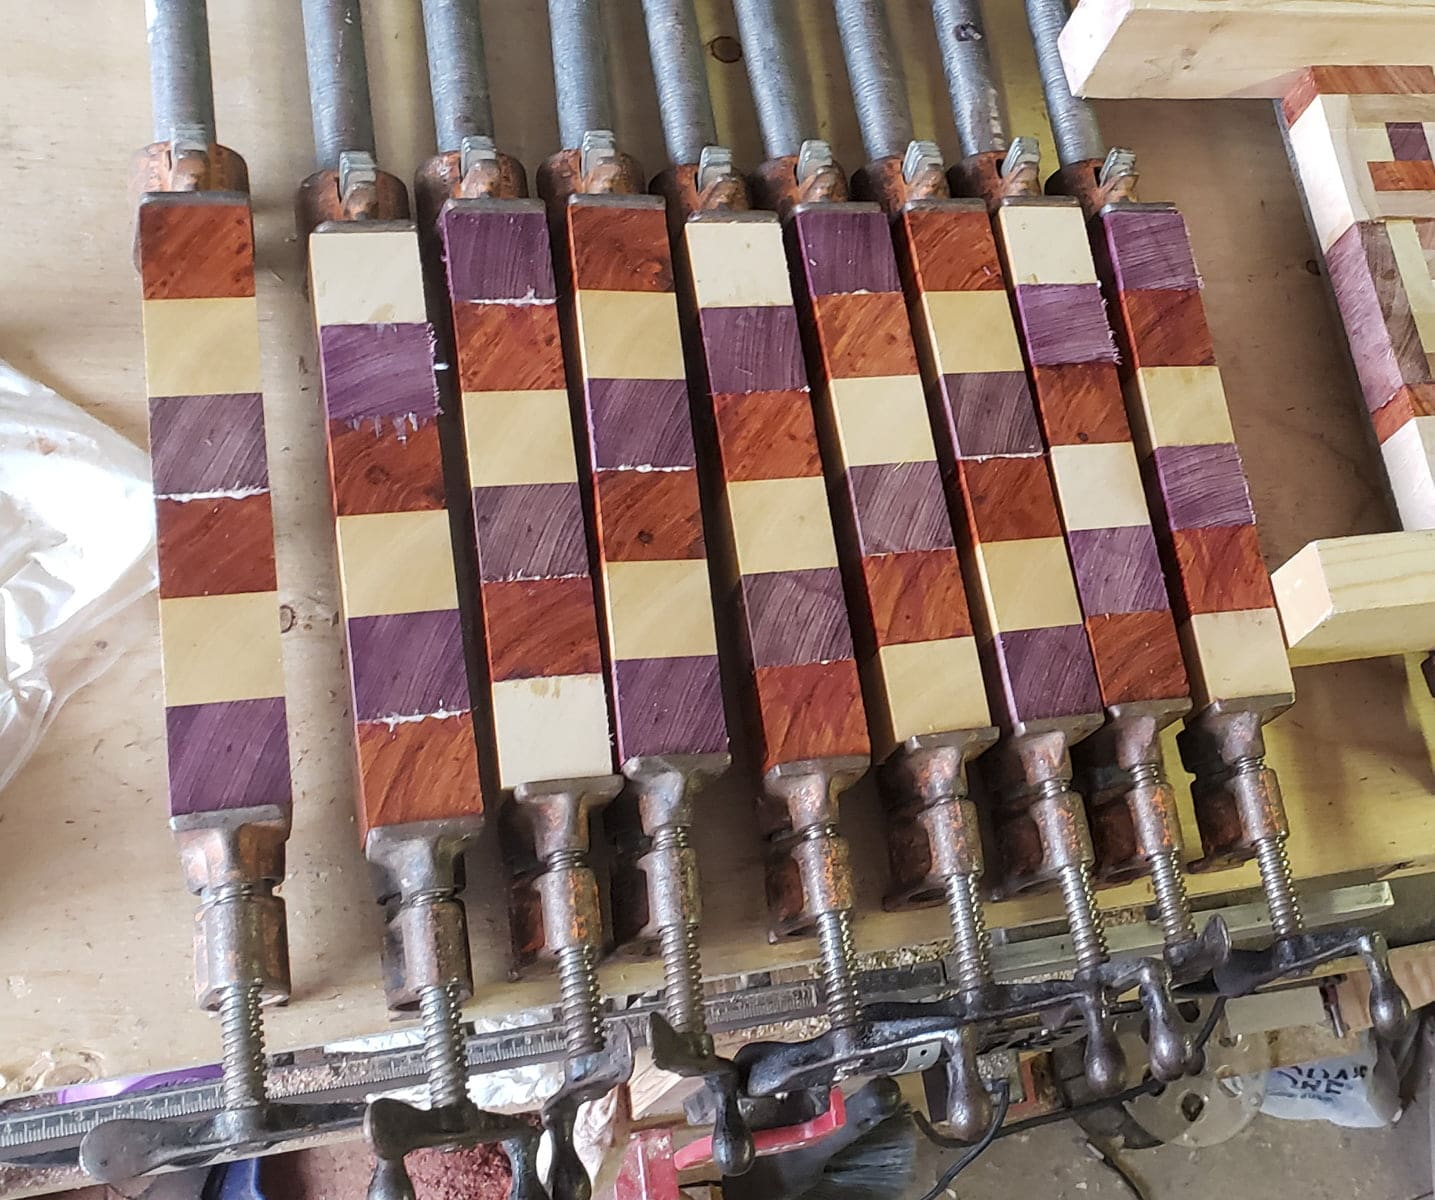 Nine sets of wooden cubes are seen on a table, clamped together in metal pipe clamps. Small amounts of glue are seen at some of the joints.